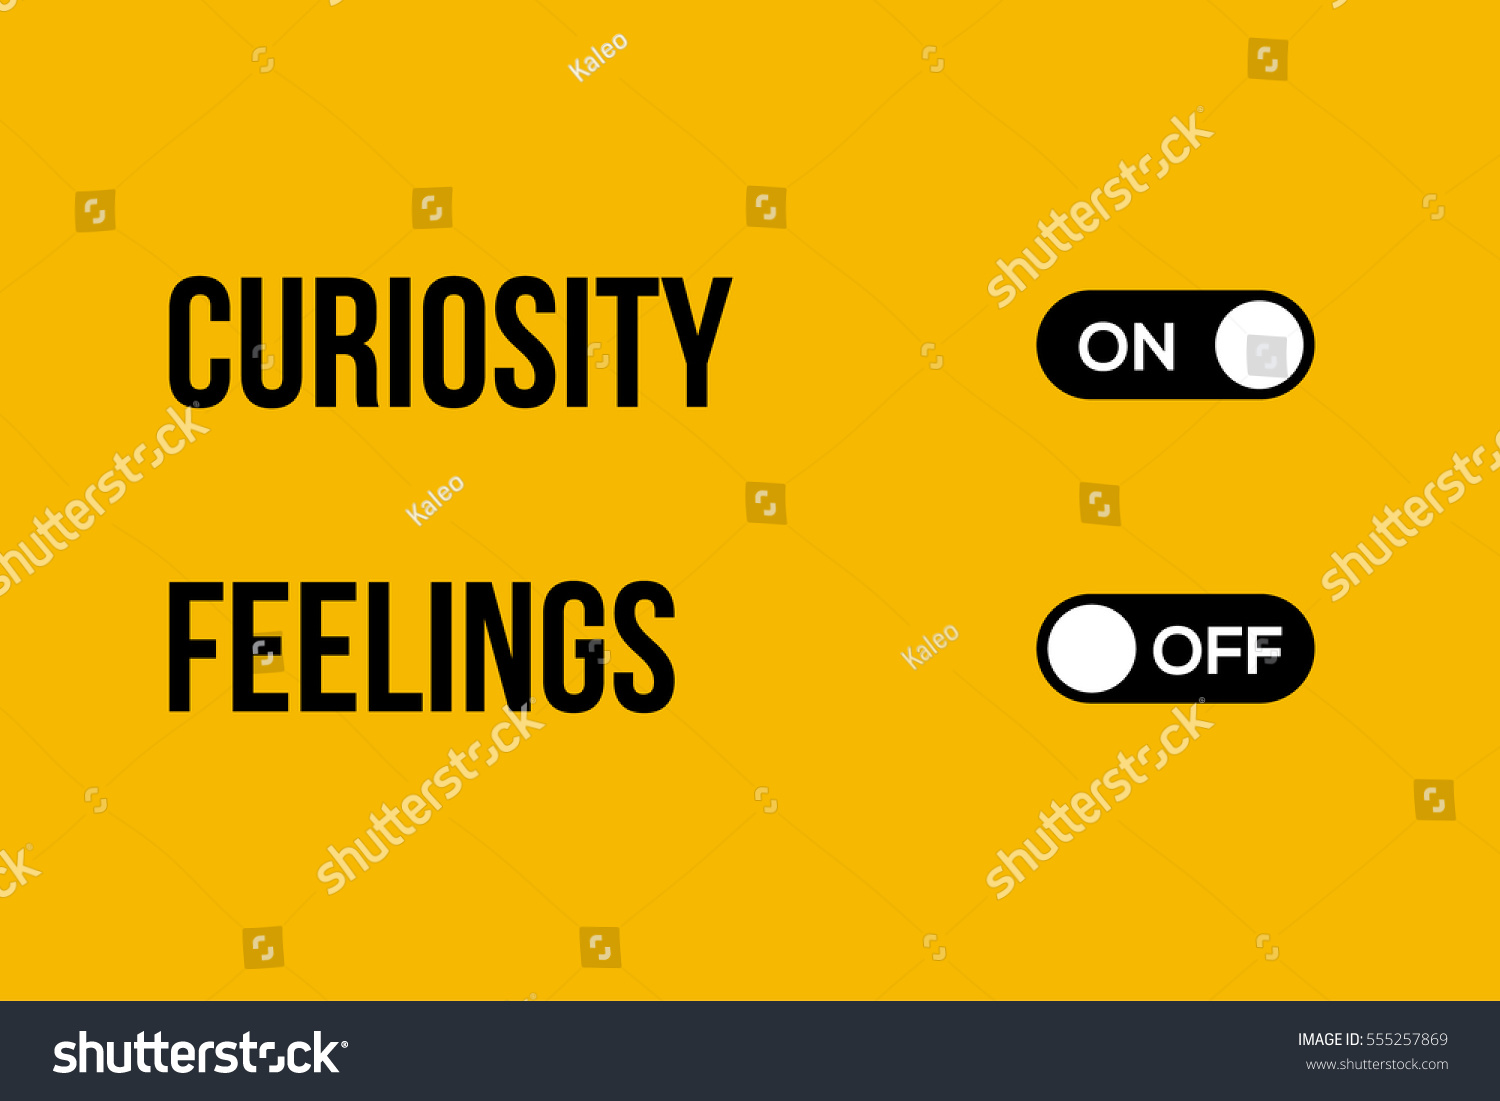 Curiosity Feelings Vector Typography On Off Stock Royalty And Button Creative Design